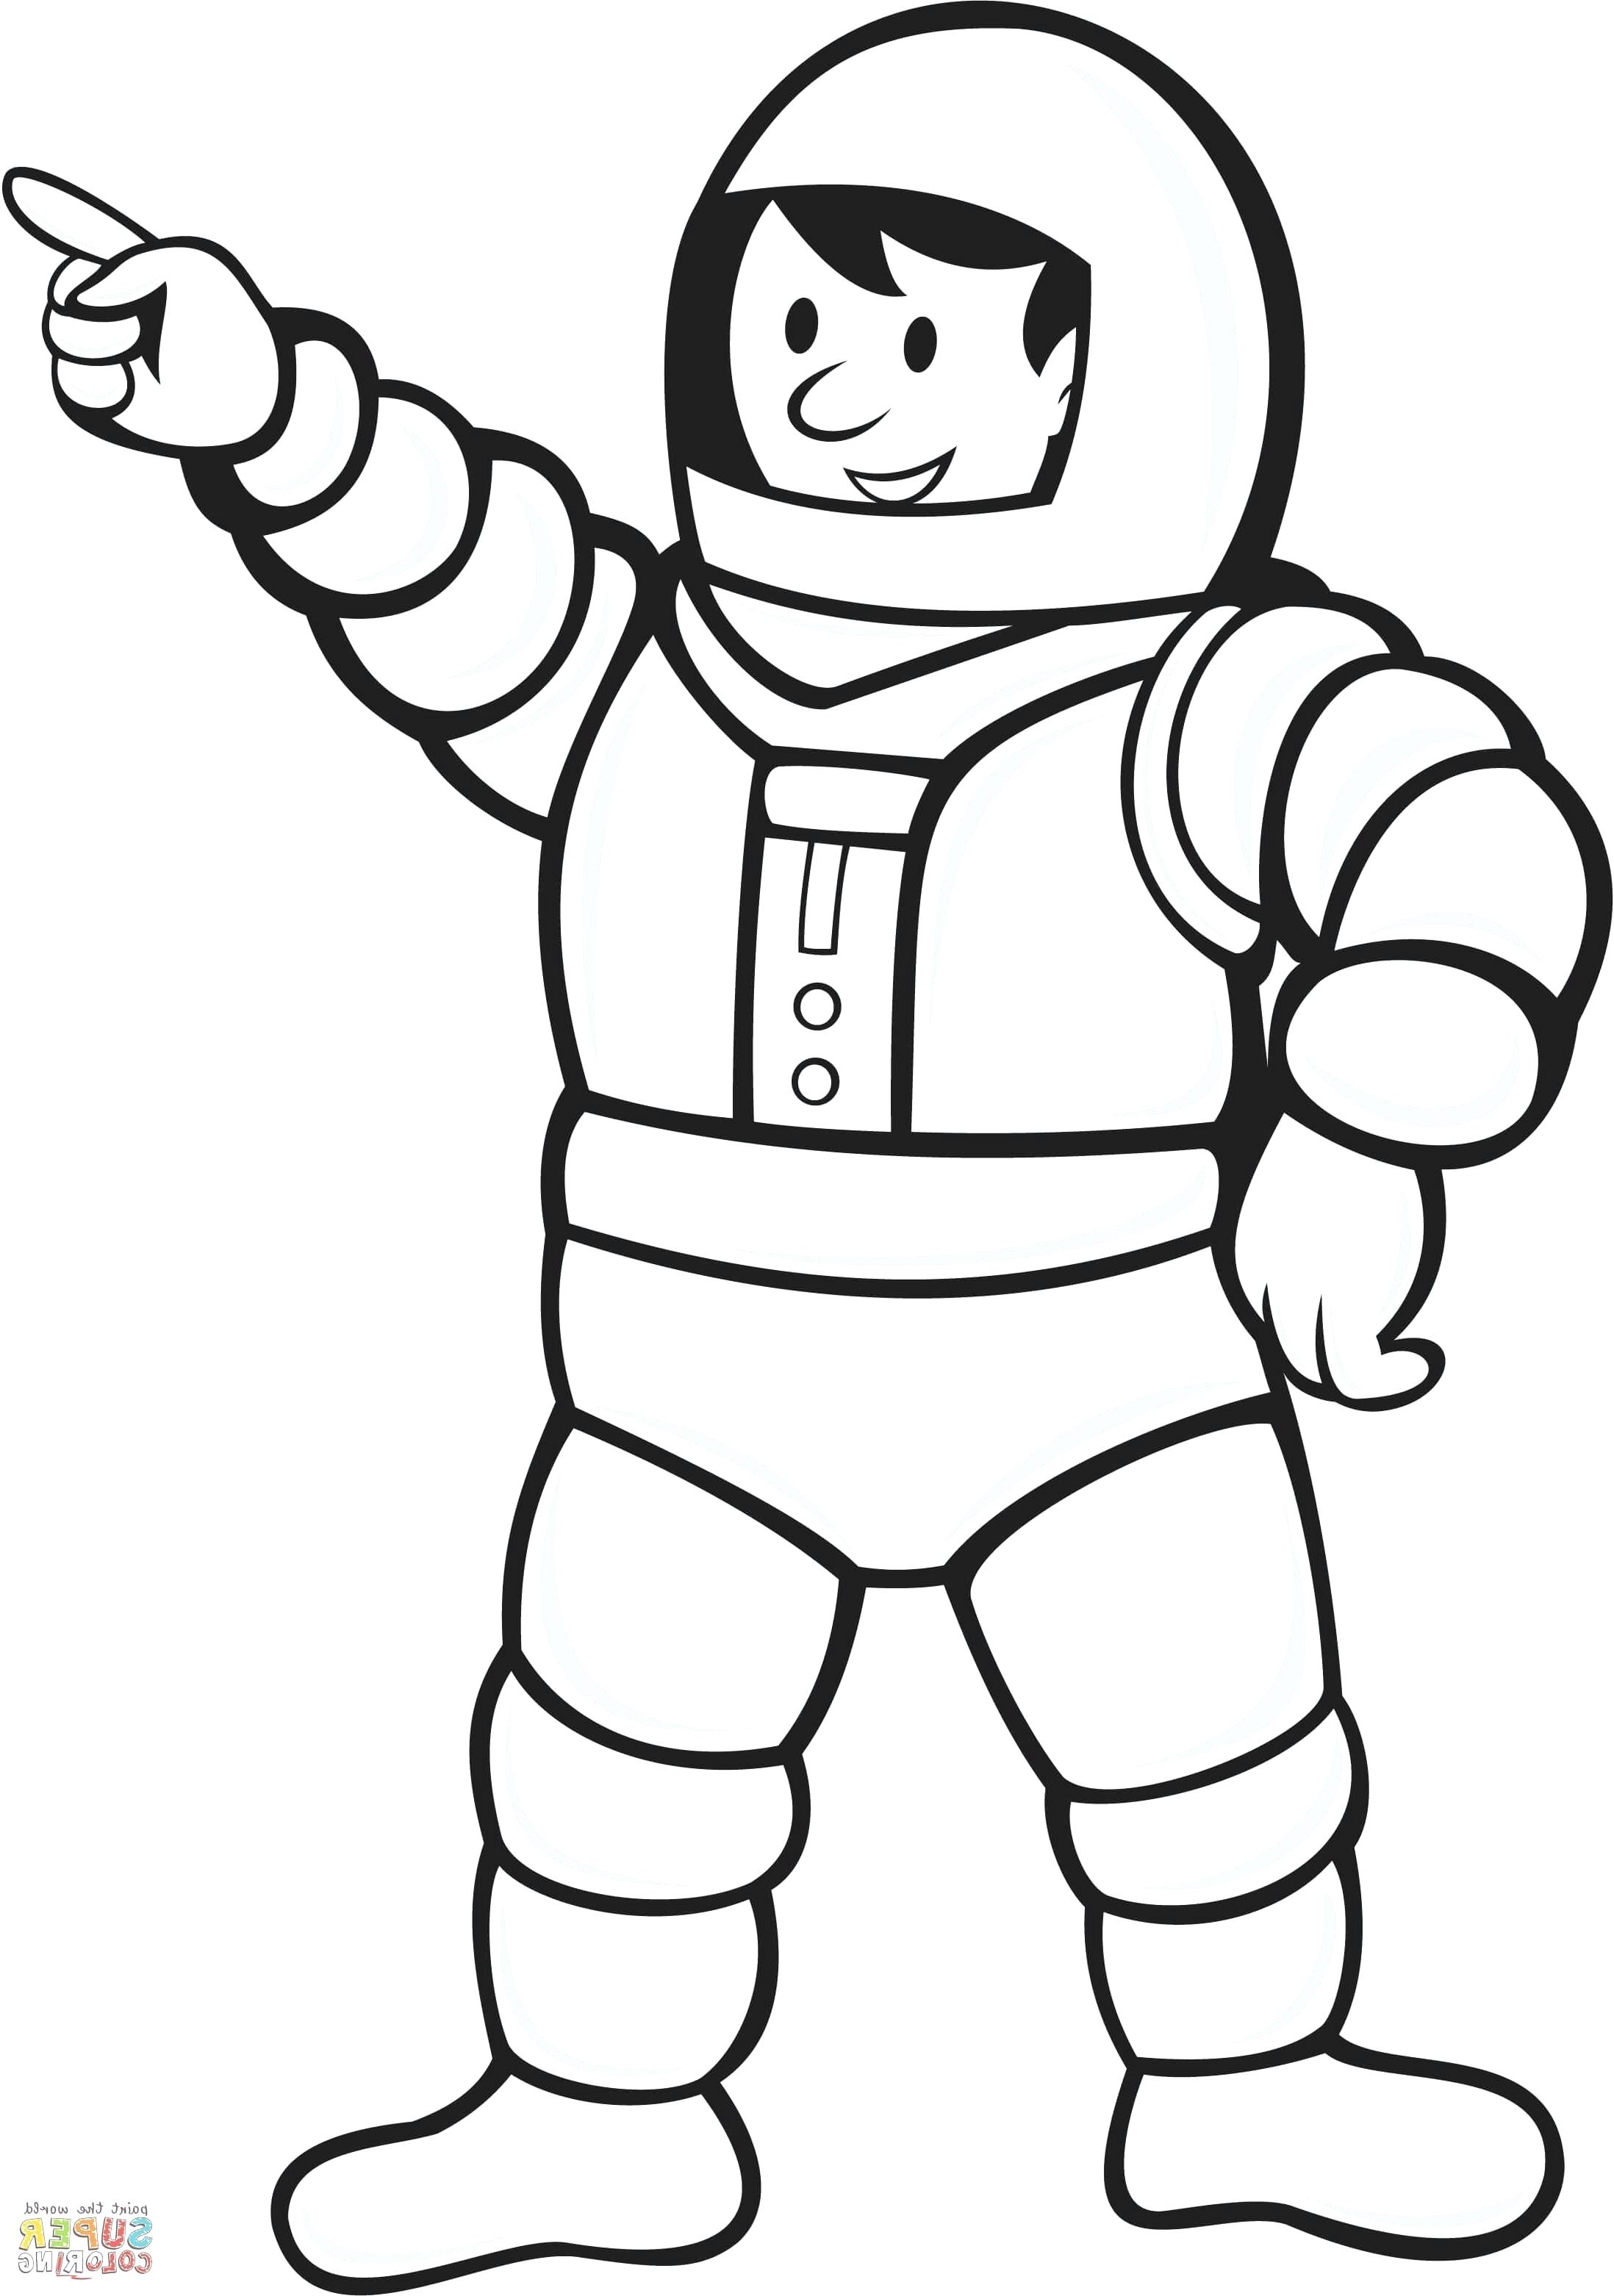 Astronaut Helmet Drawing at GetDrawings.com | Free for ...